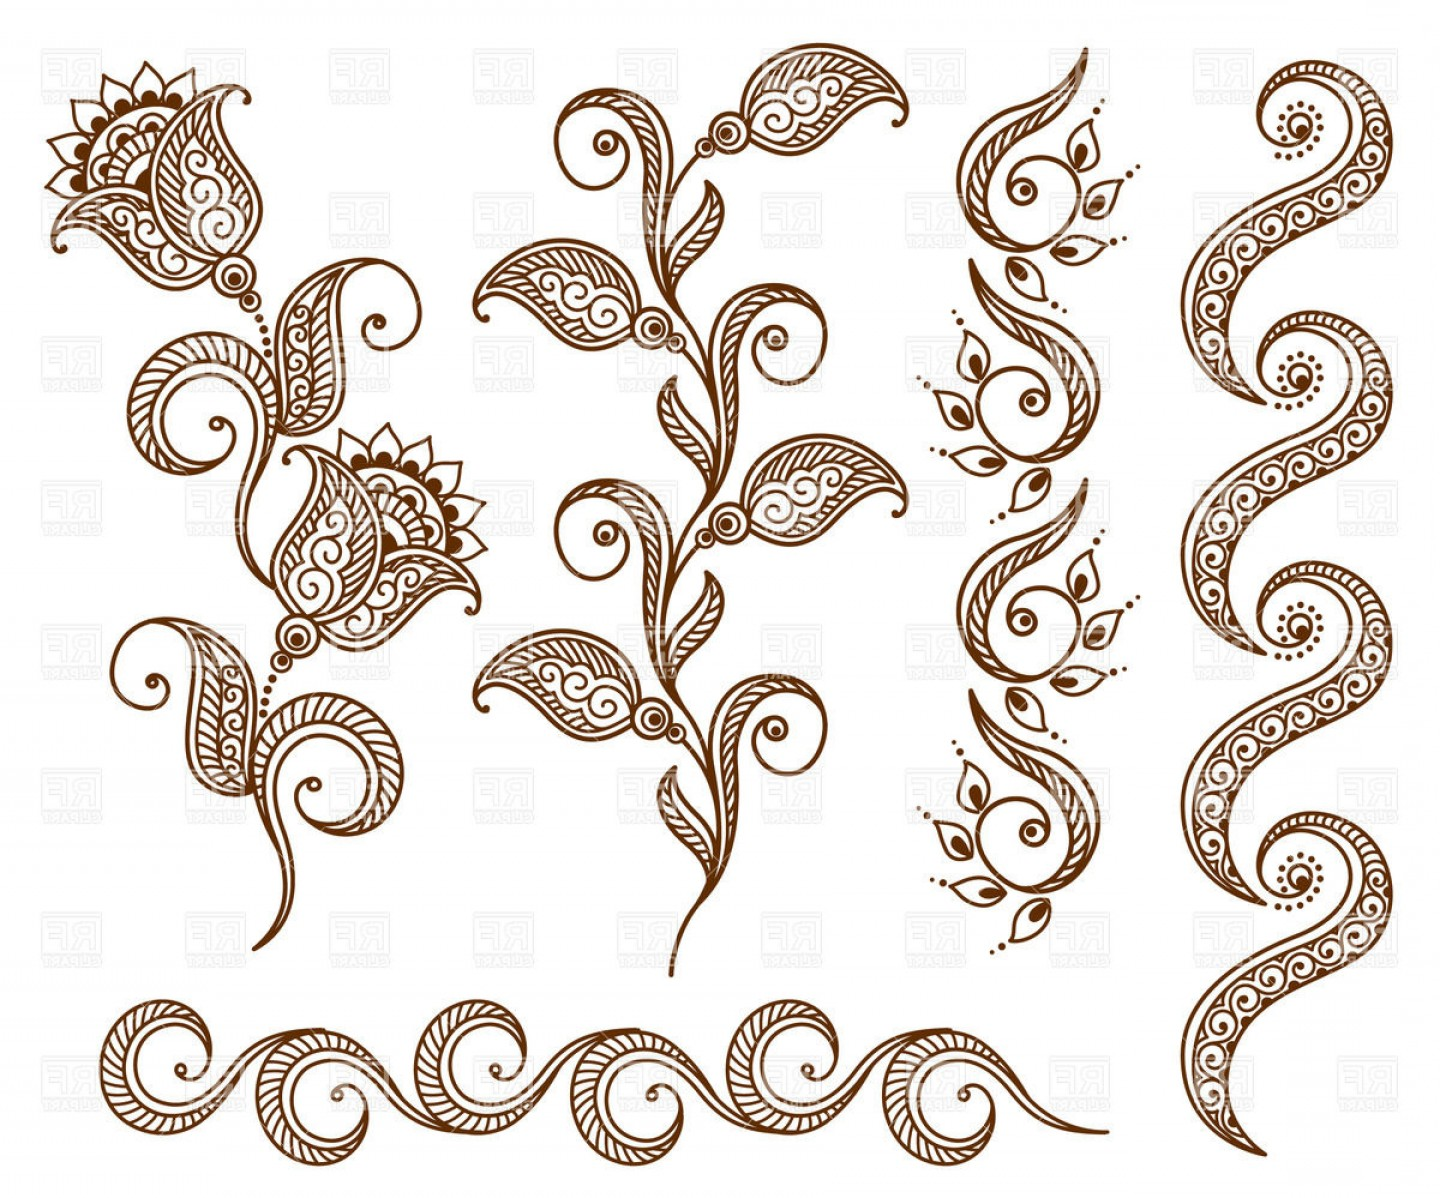 Vector Clip Art Collections: Collection Of Floral Ornamental Design Elements Vector Clipart